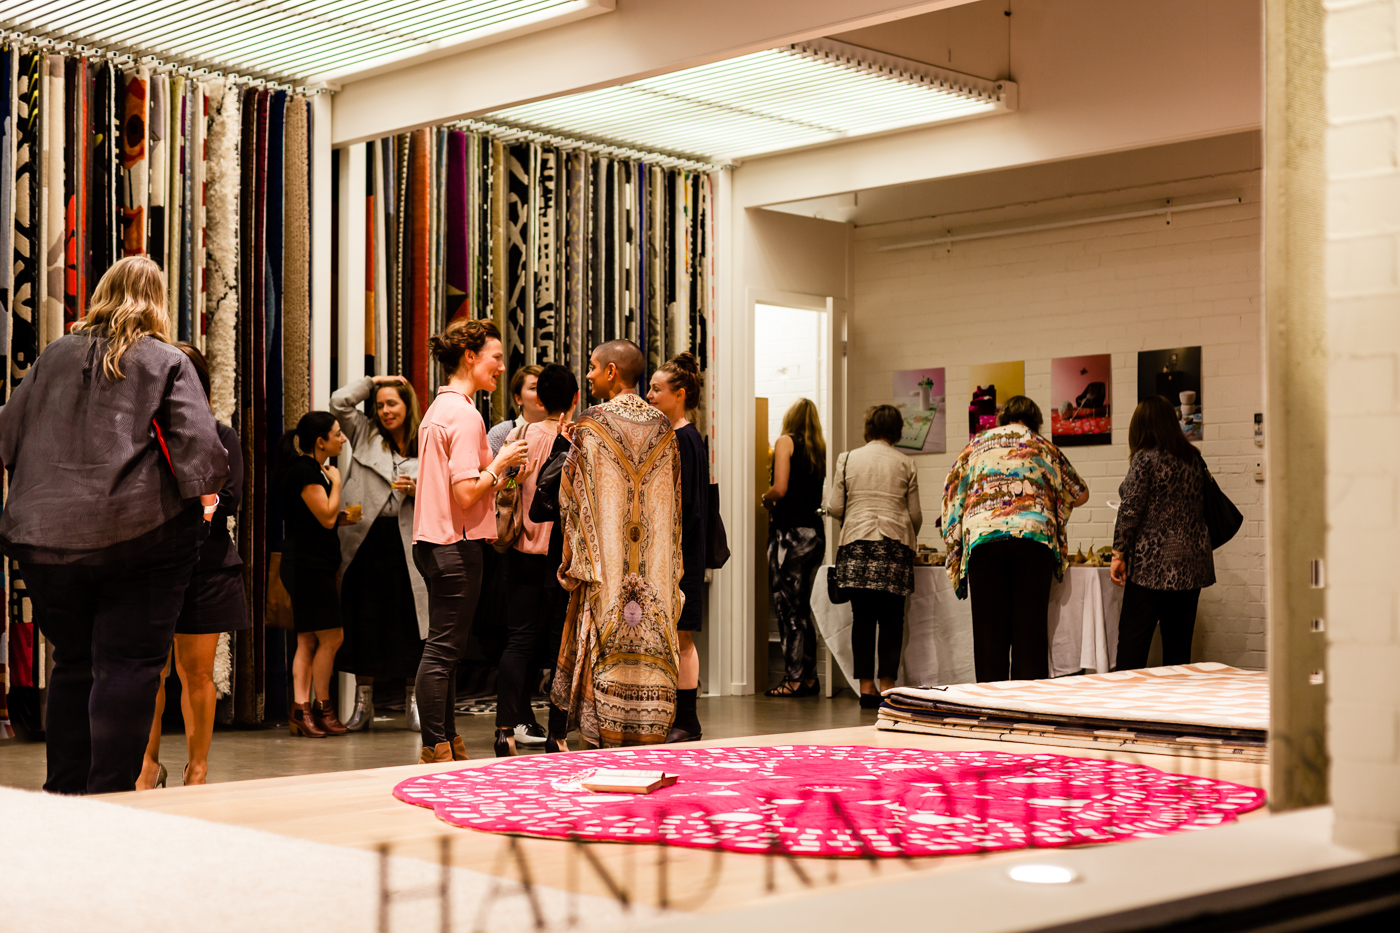 Mingling |NEW AGAIN by Petrina Turner Design for Designer Rugs | The launch event